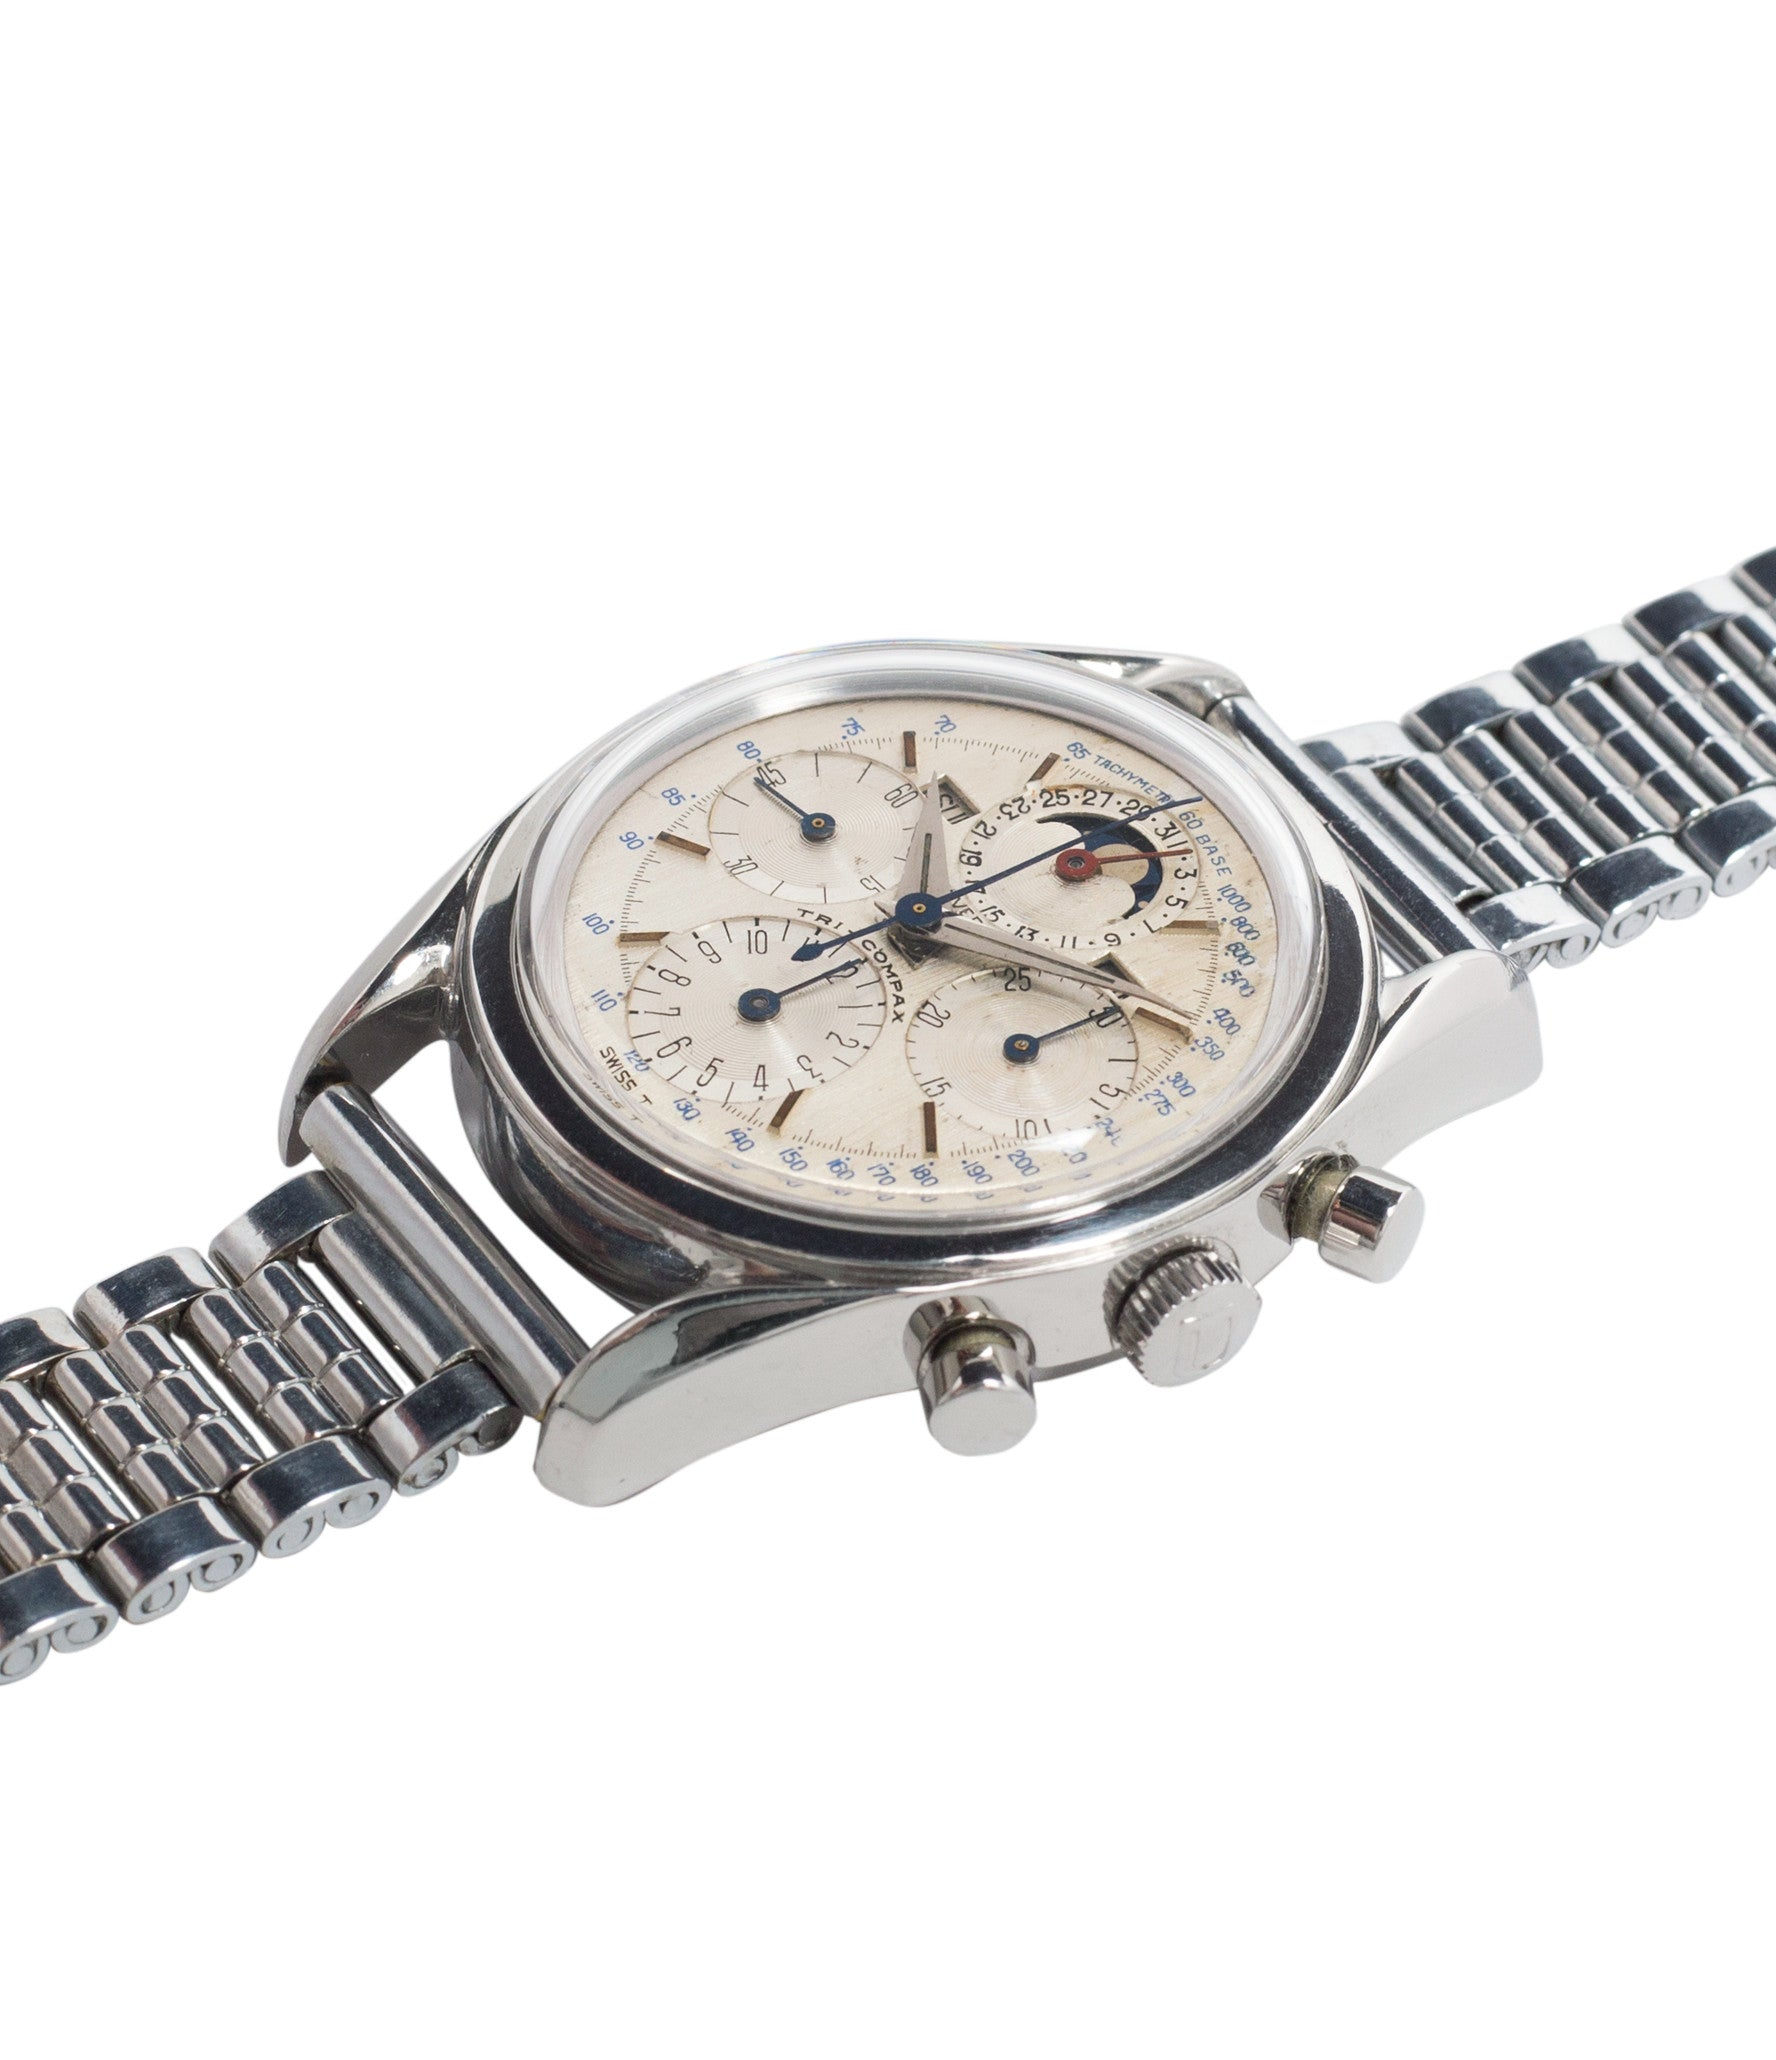 buy vintage chronograph Universal Geneve 222100/2 Tri-Compax Triple Calendar Moonphase steel chronograph watch for sale online at A Collected Man London rare vintage watch specialist